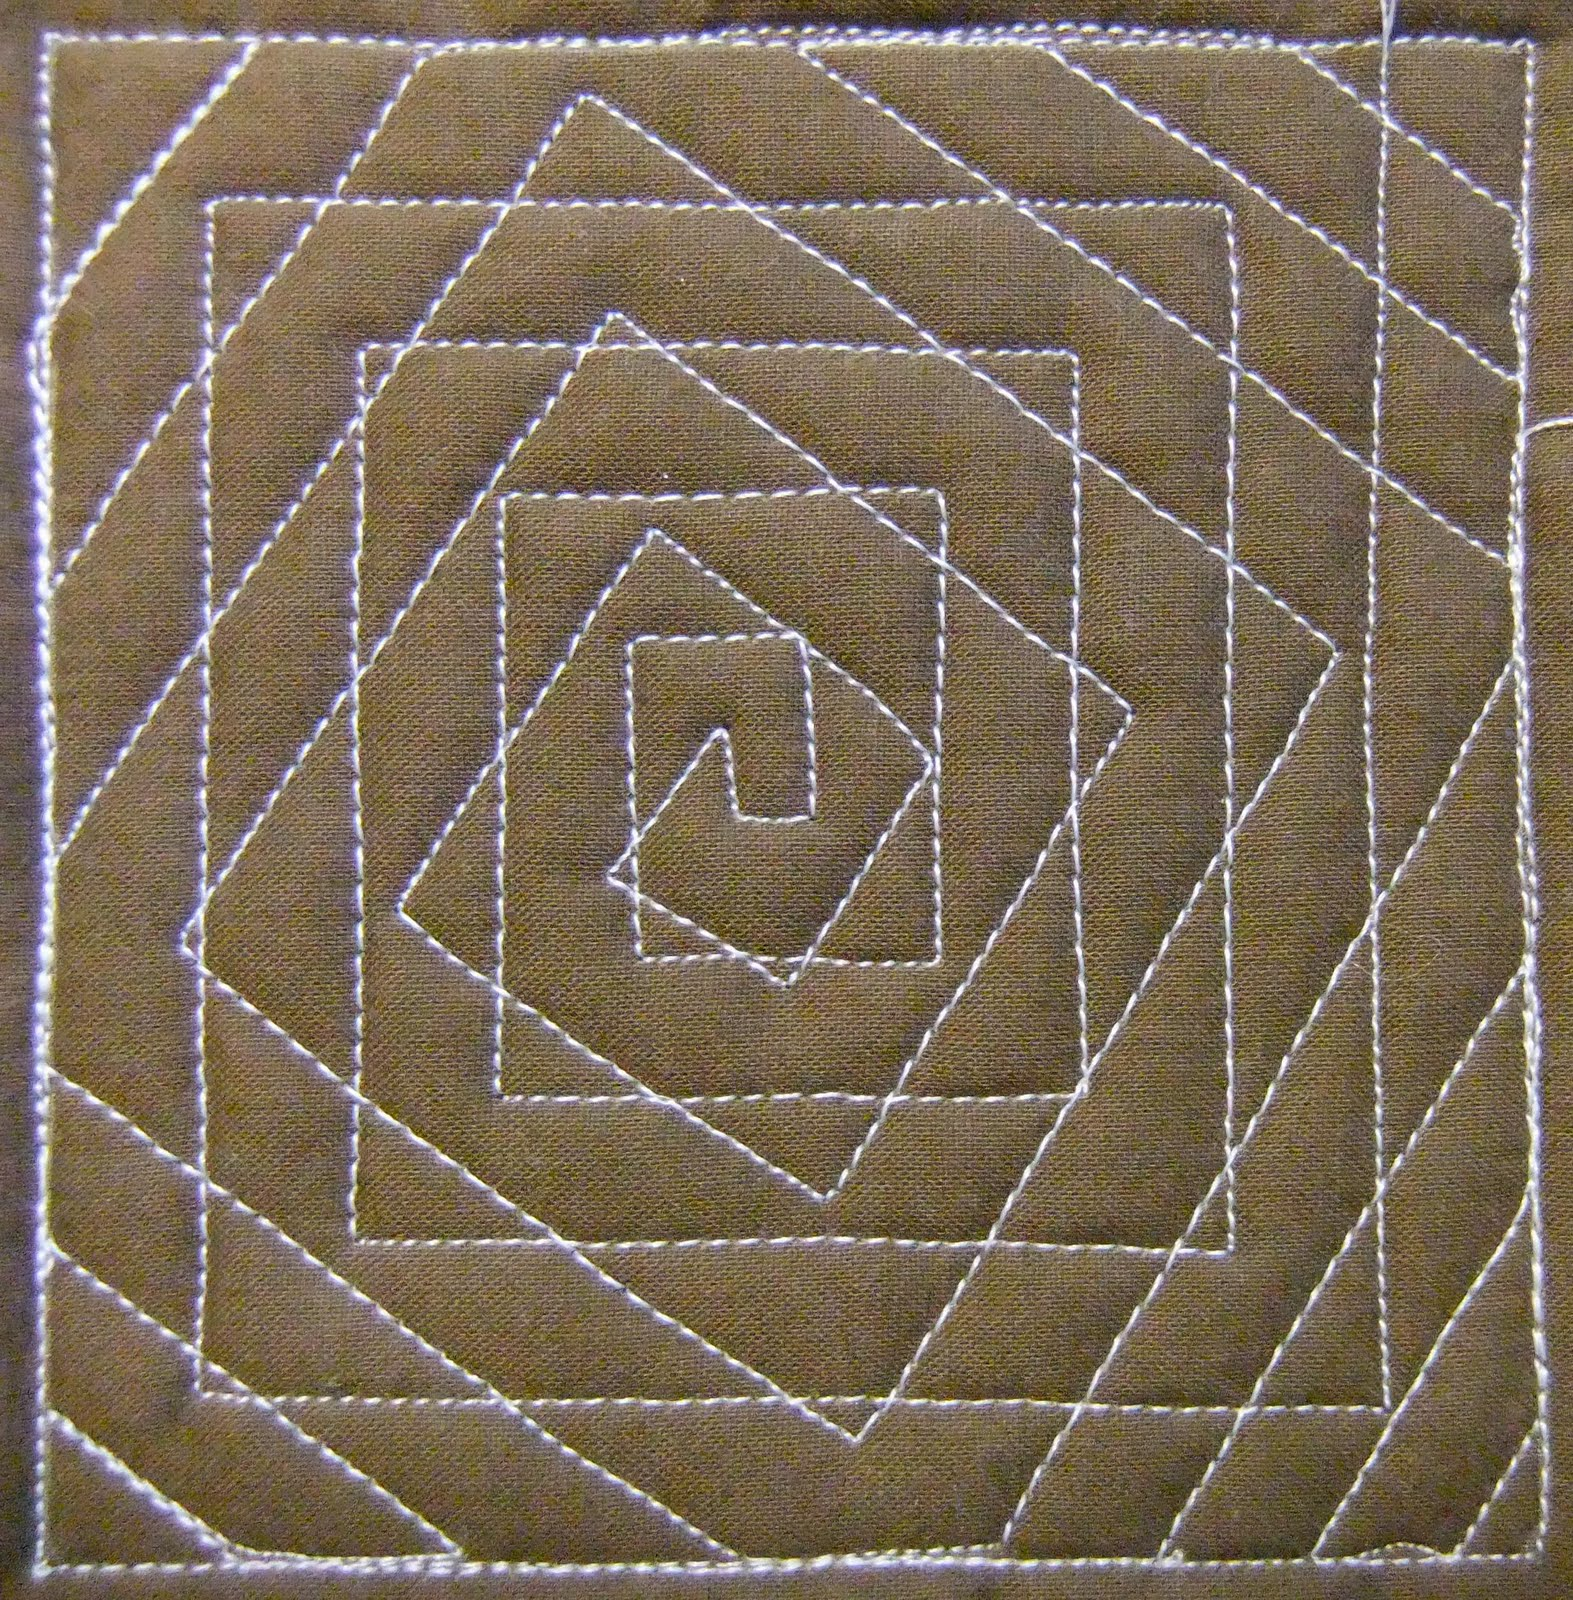 Free Motion Quilting Designs Easy : The Free Motion Quilting Project: Day 204 - Spiral Illusion